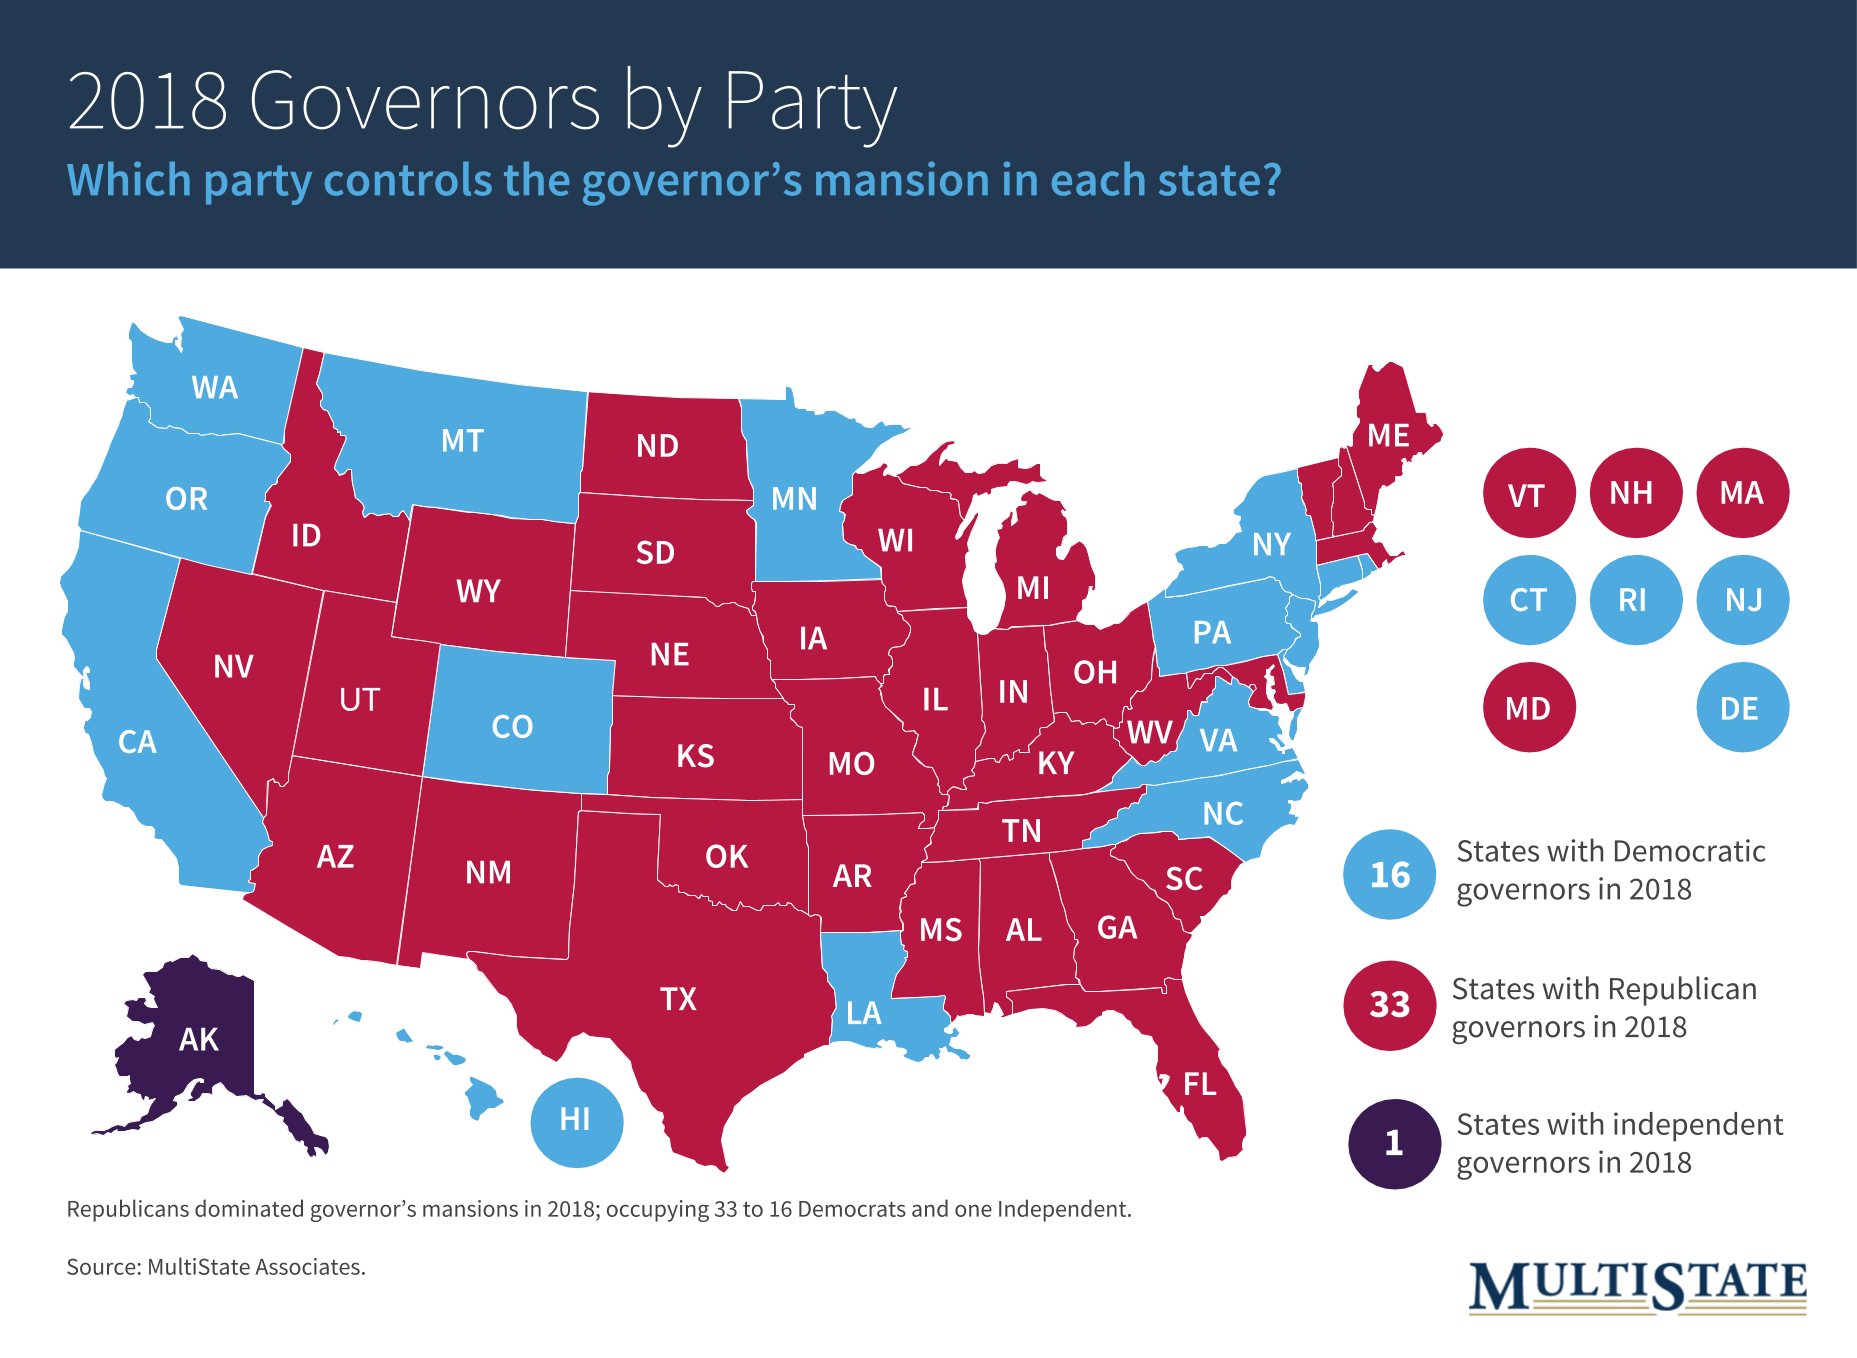 2018 Governors by Party (2)